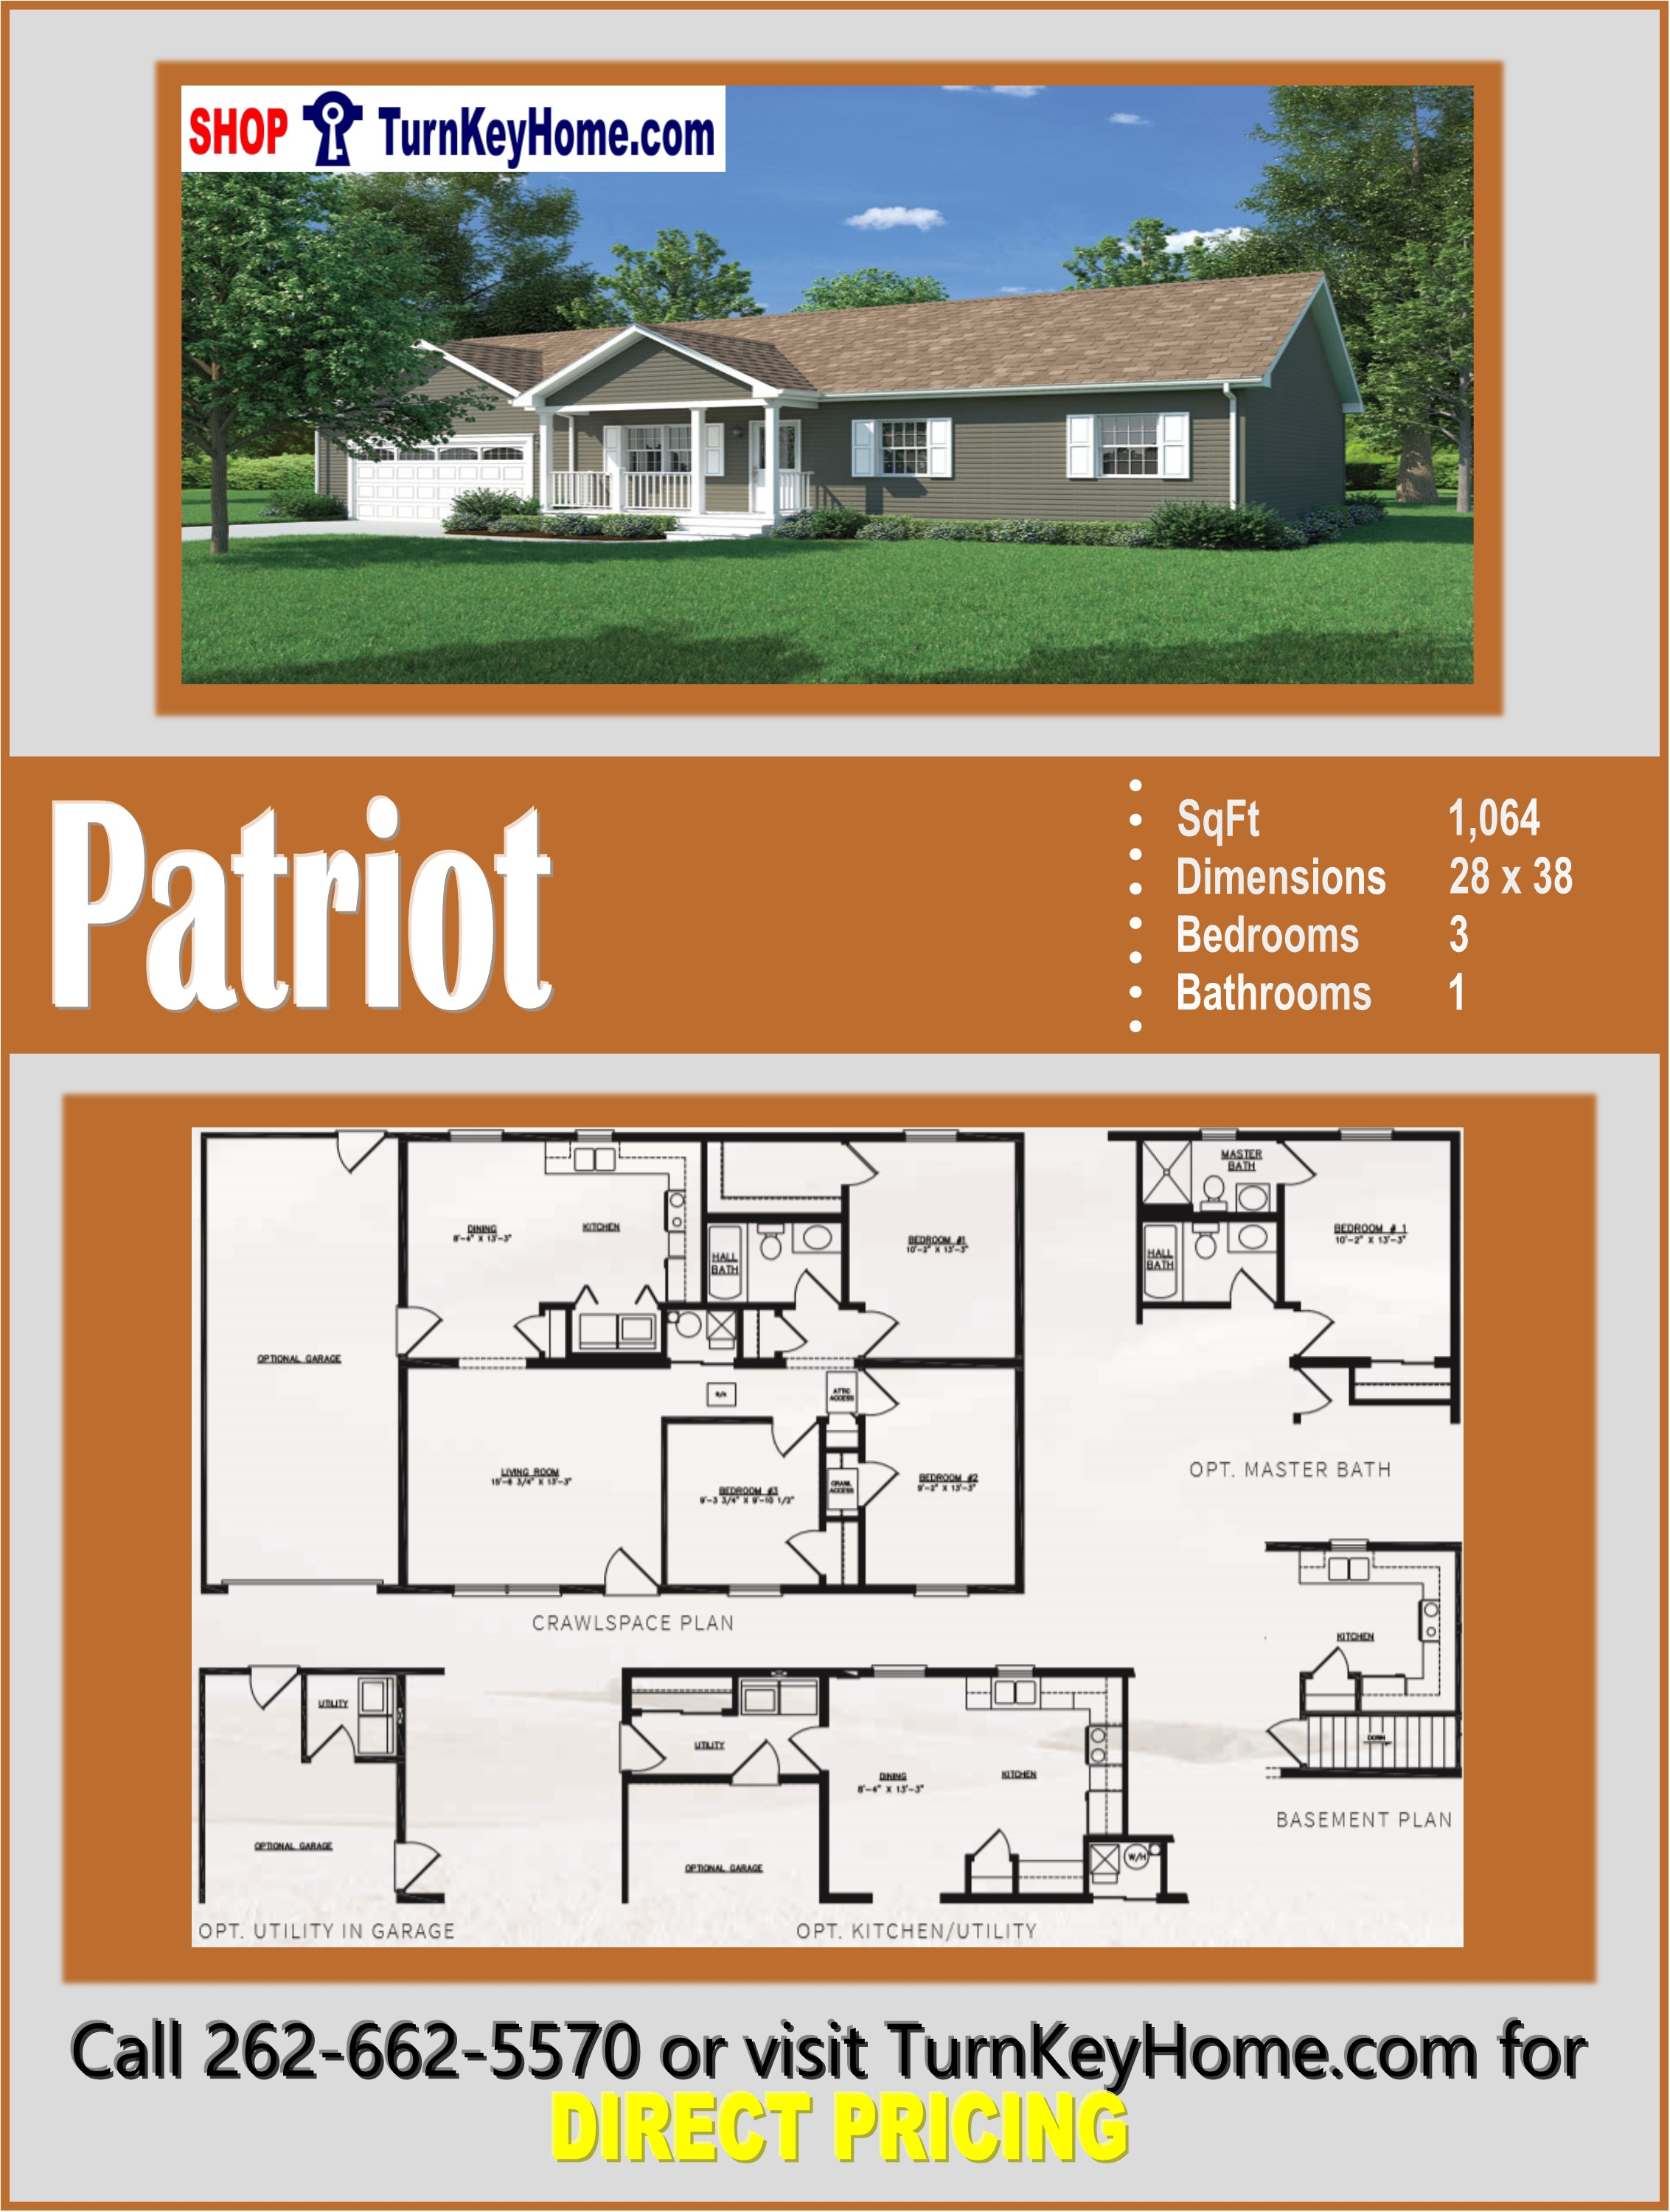 PATRIOT Ranch Style Home 3 Bed 1 Bath Plan 1064 SF Priced ... on ranch log home plans, ranch home lighting, luxury home plans, ranch home addition plans, ranch homes with porches, ranch home pricing, ranch home sketches, ranch style homes, ranch home basement plans, house plans, large ranch home plans, ranch home building kits, ranch home interiors, ranch home doors, ranch home with basement, ranch home design plans, ranch home history, ranch home bedrooms, ranch home architecture, ranch home elevations,